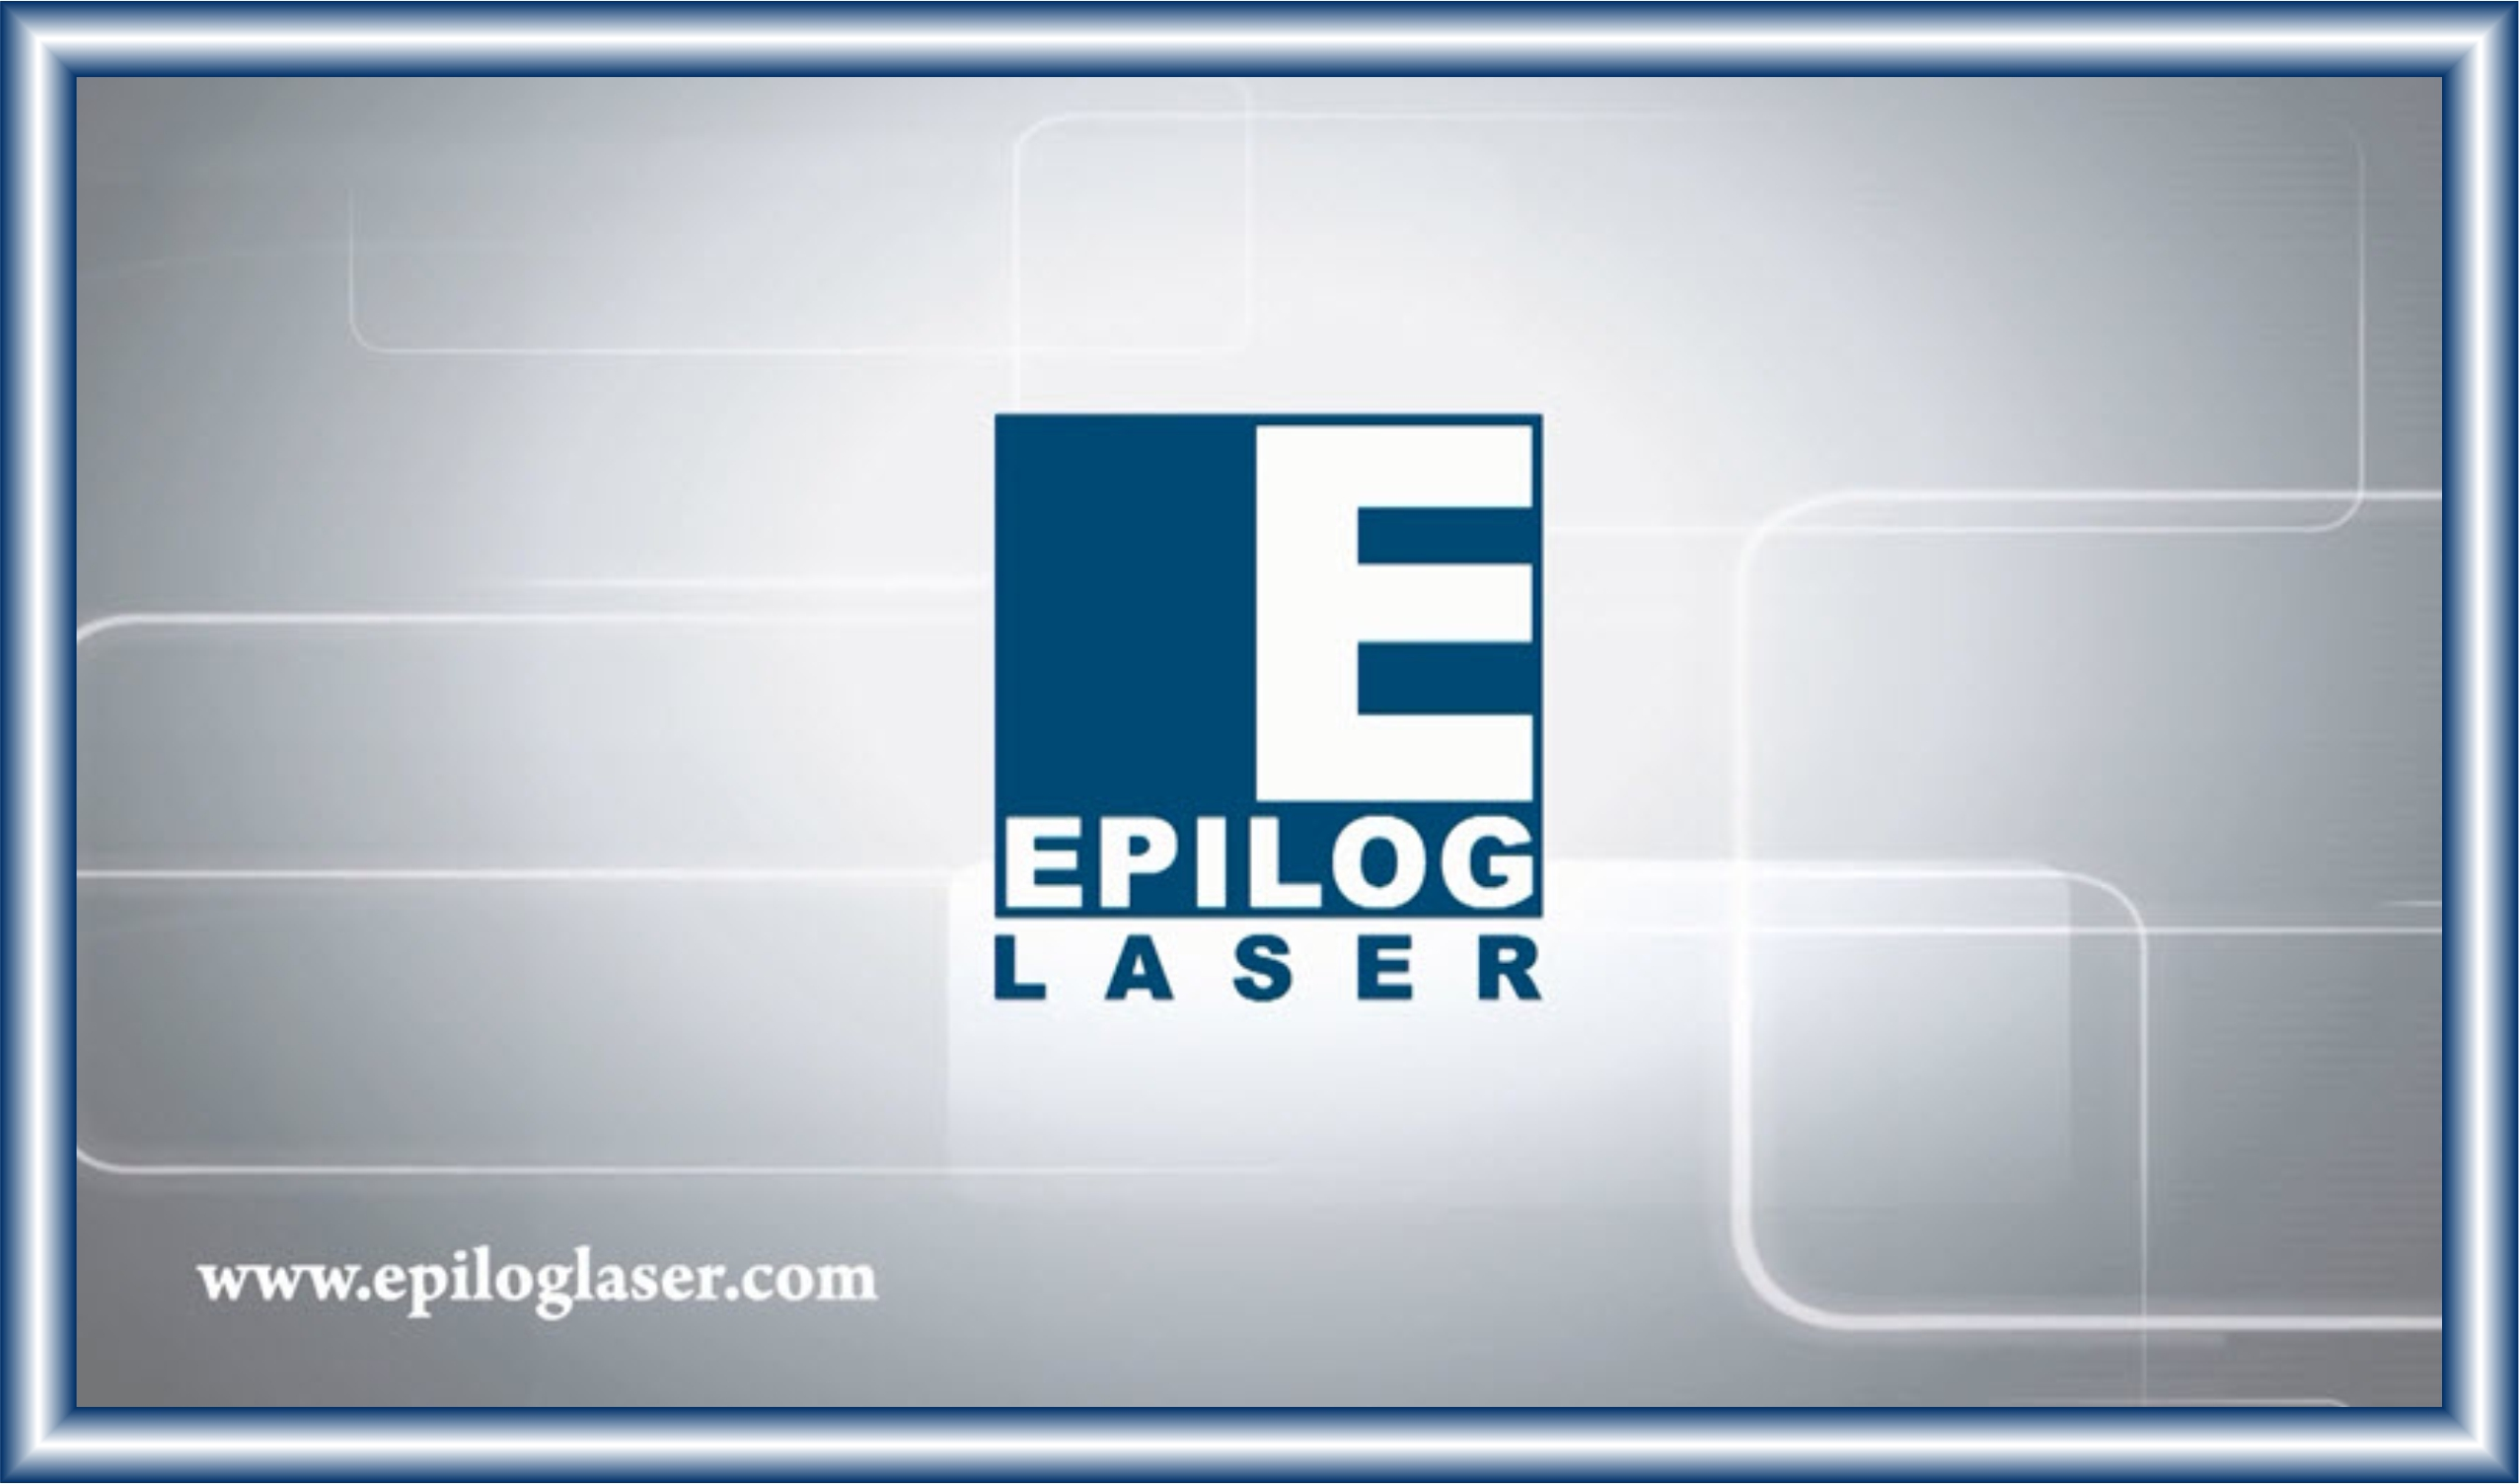 Epilog Laser's YouTube Channel